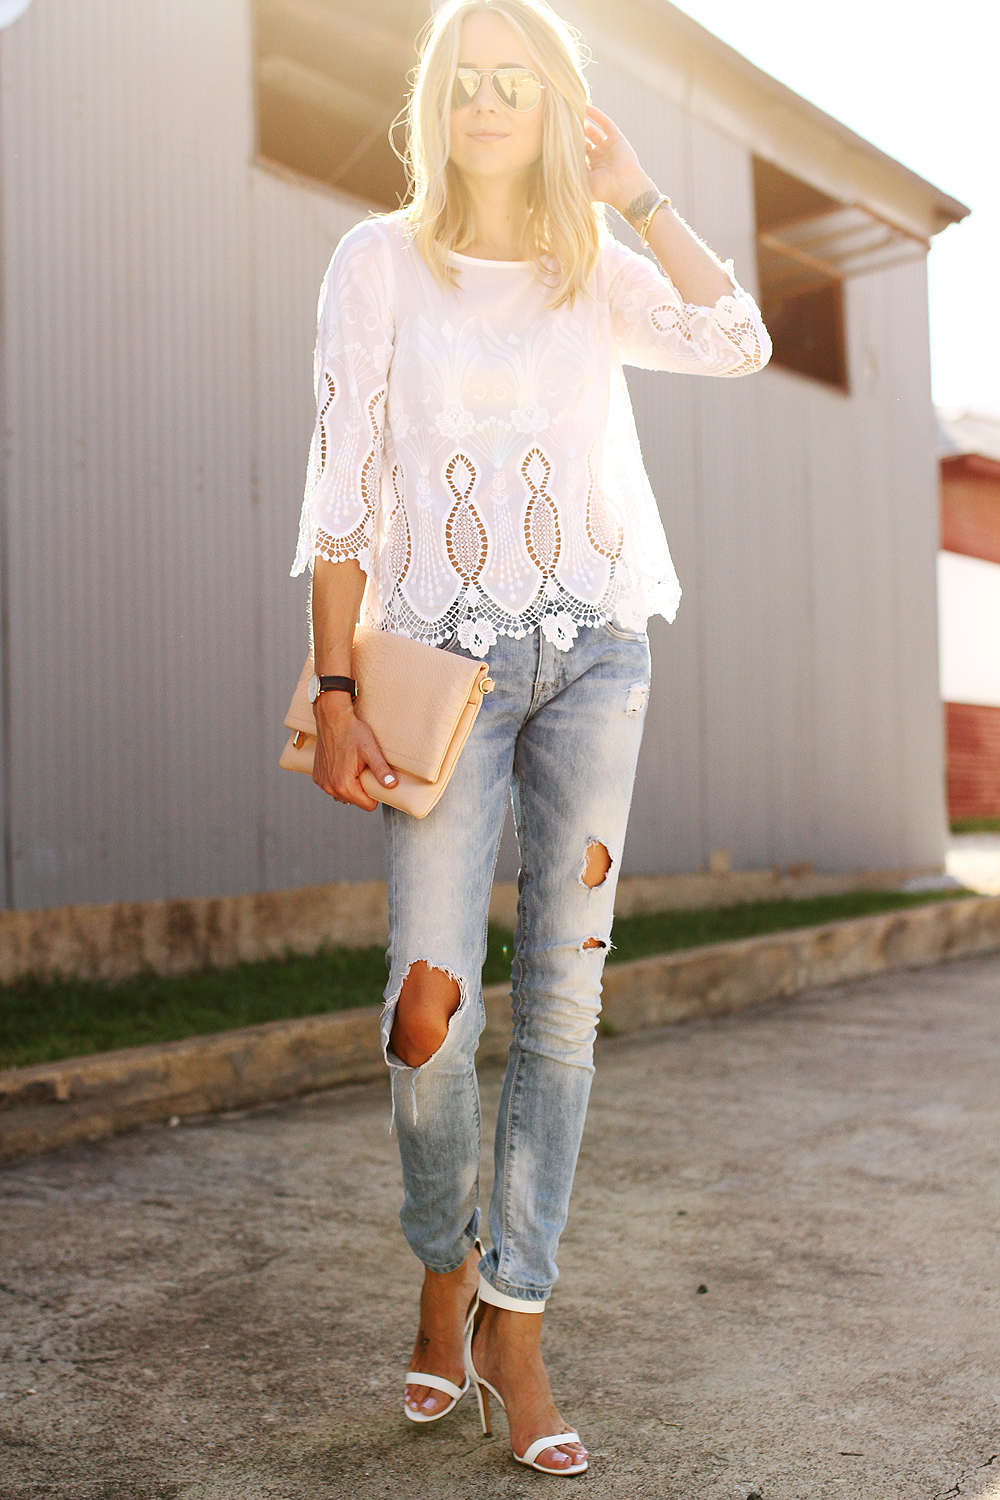 White Lace Top Amp Ripped Jeans Fashion Jackson